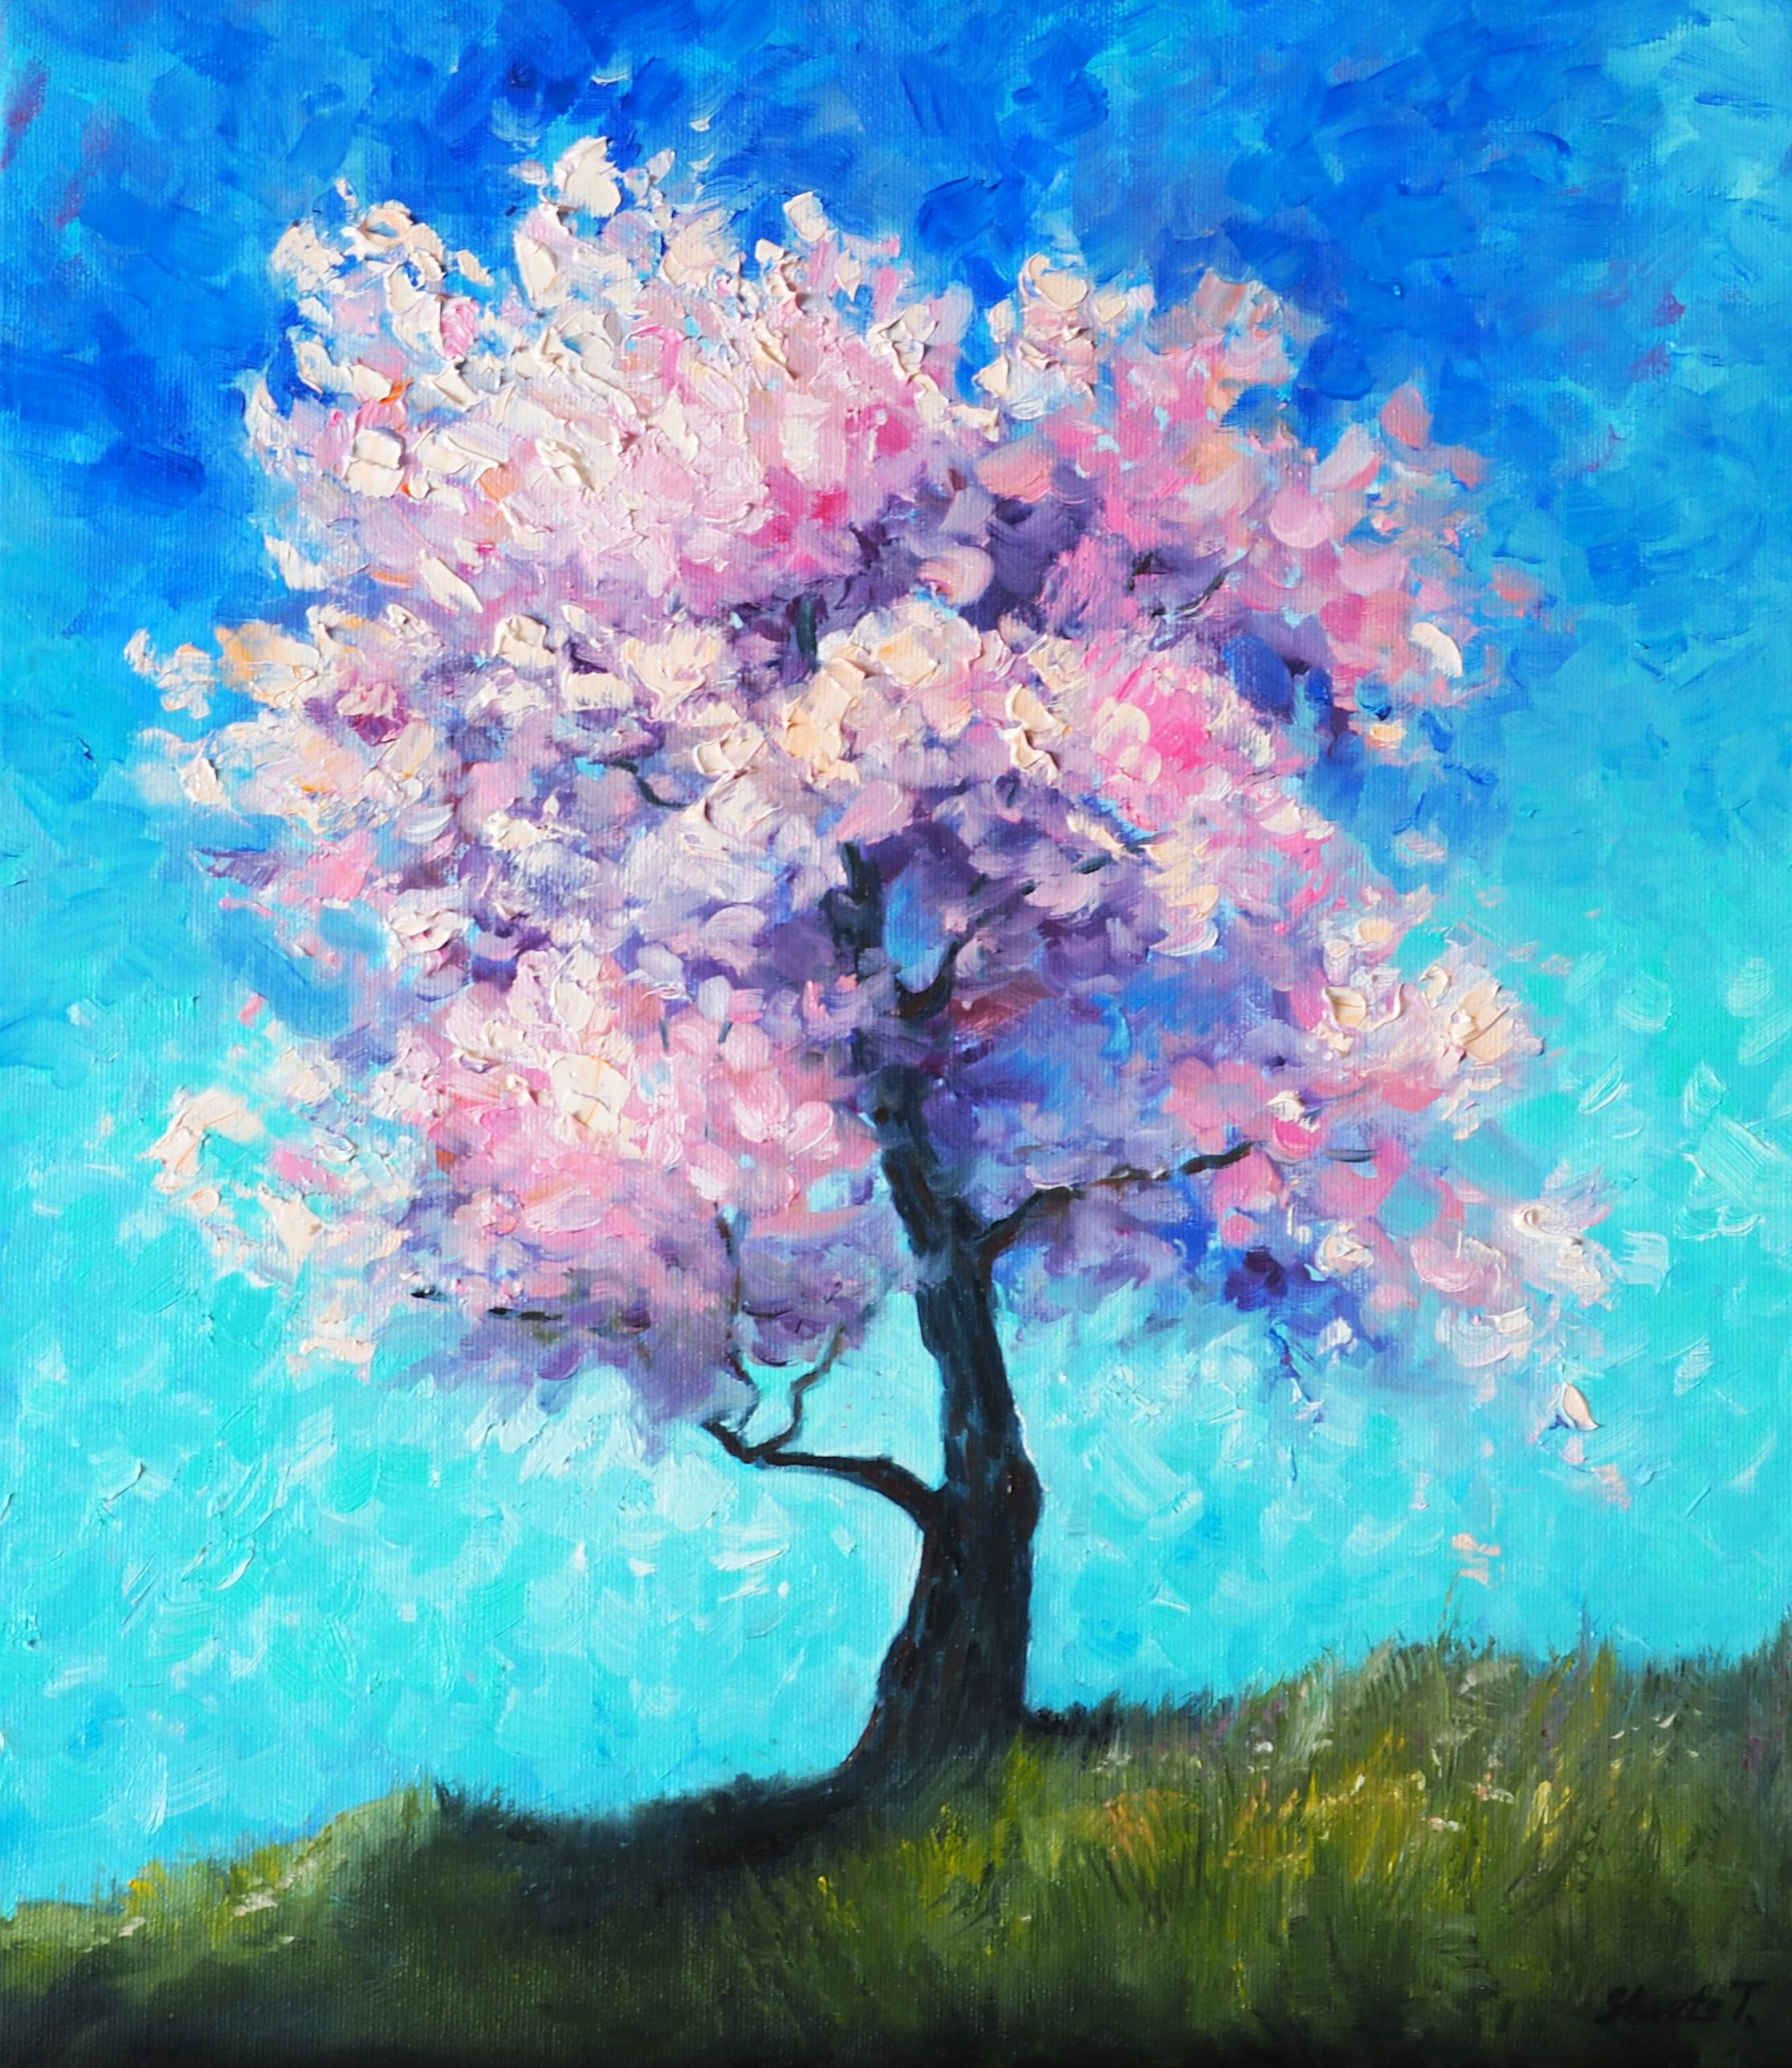 Blooming Tree Oil Painting On Canvas Sunny Landscape Abstract Etsy Christmas Paintings On Canvas Oil Painting On Canvas Tree Art